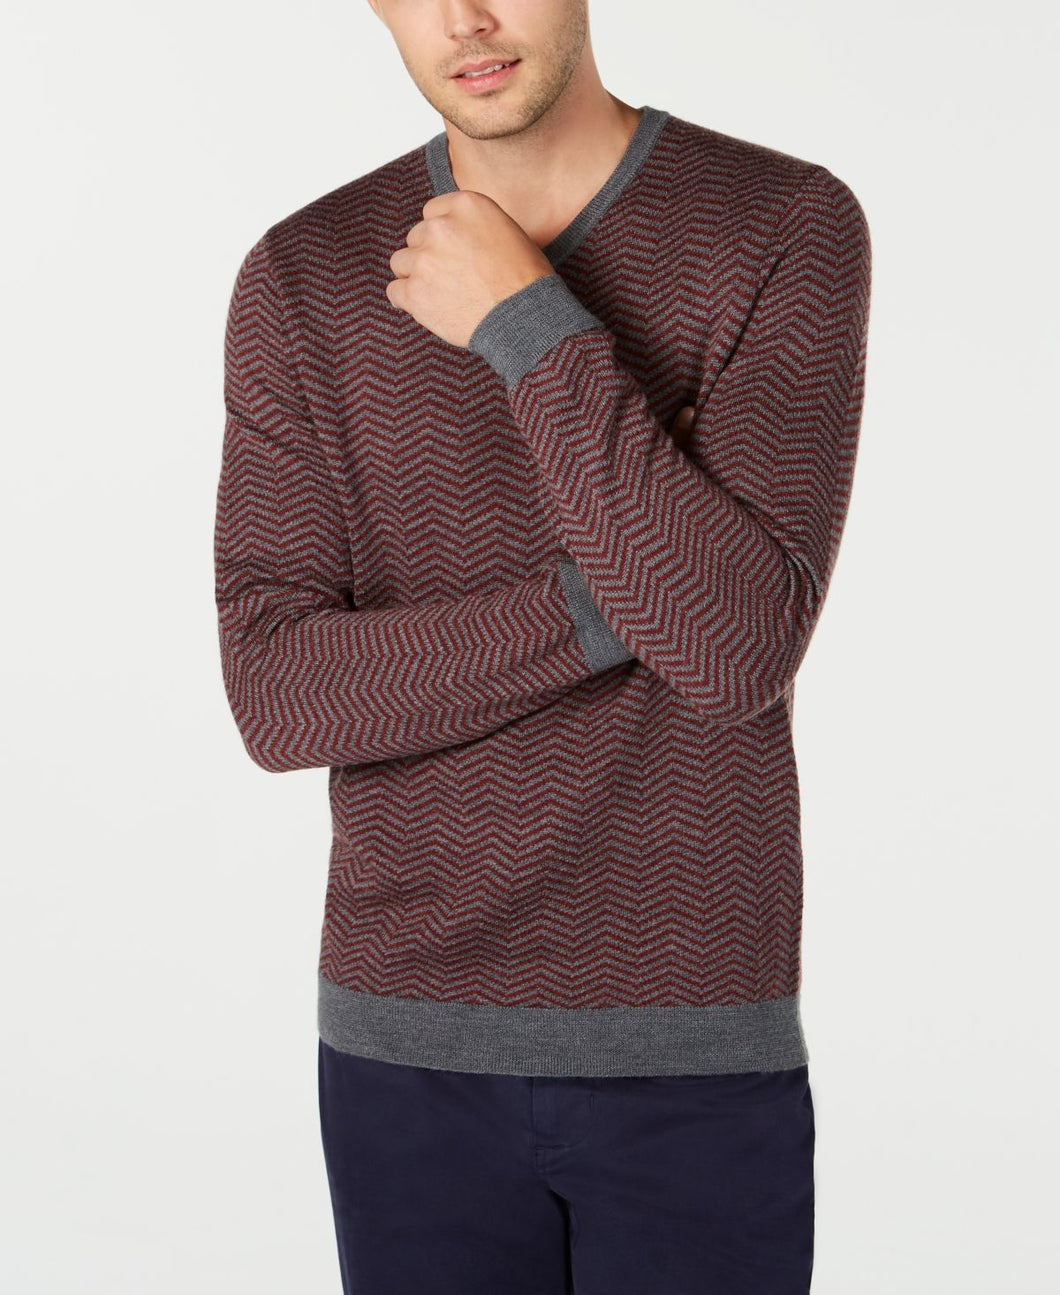 TASSO ELBA - Men's Merino Wool Blend V-Neck Herringbone Sweater